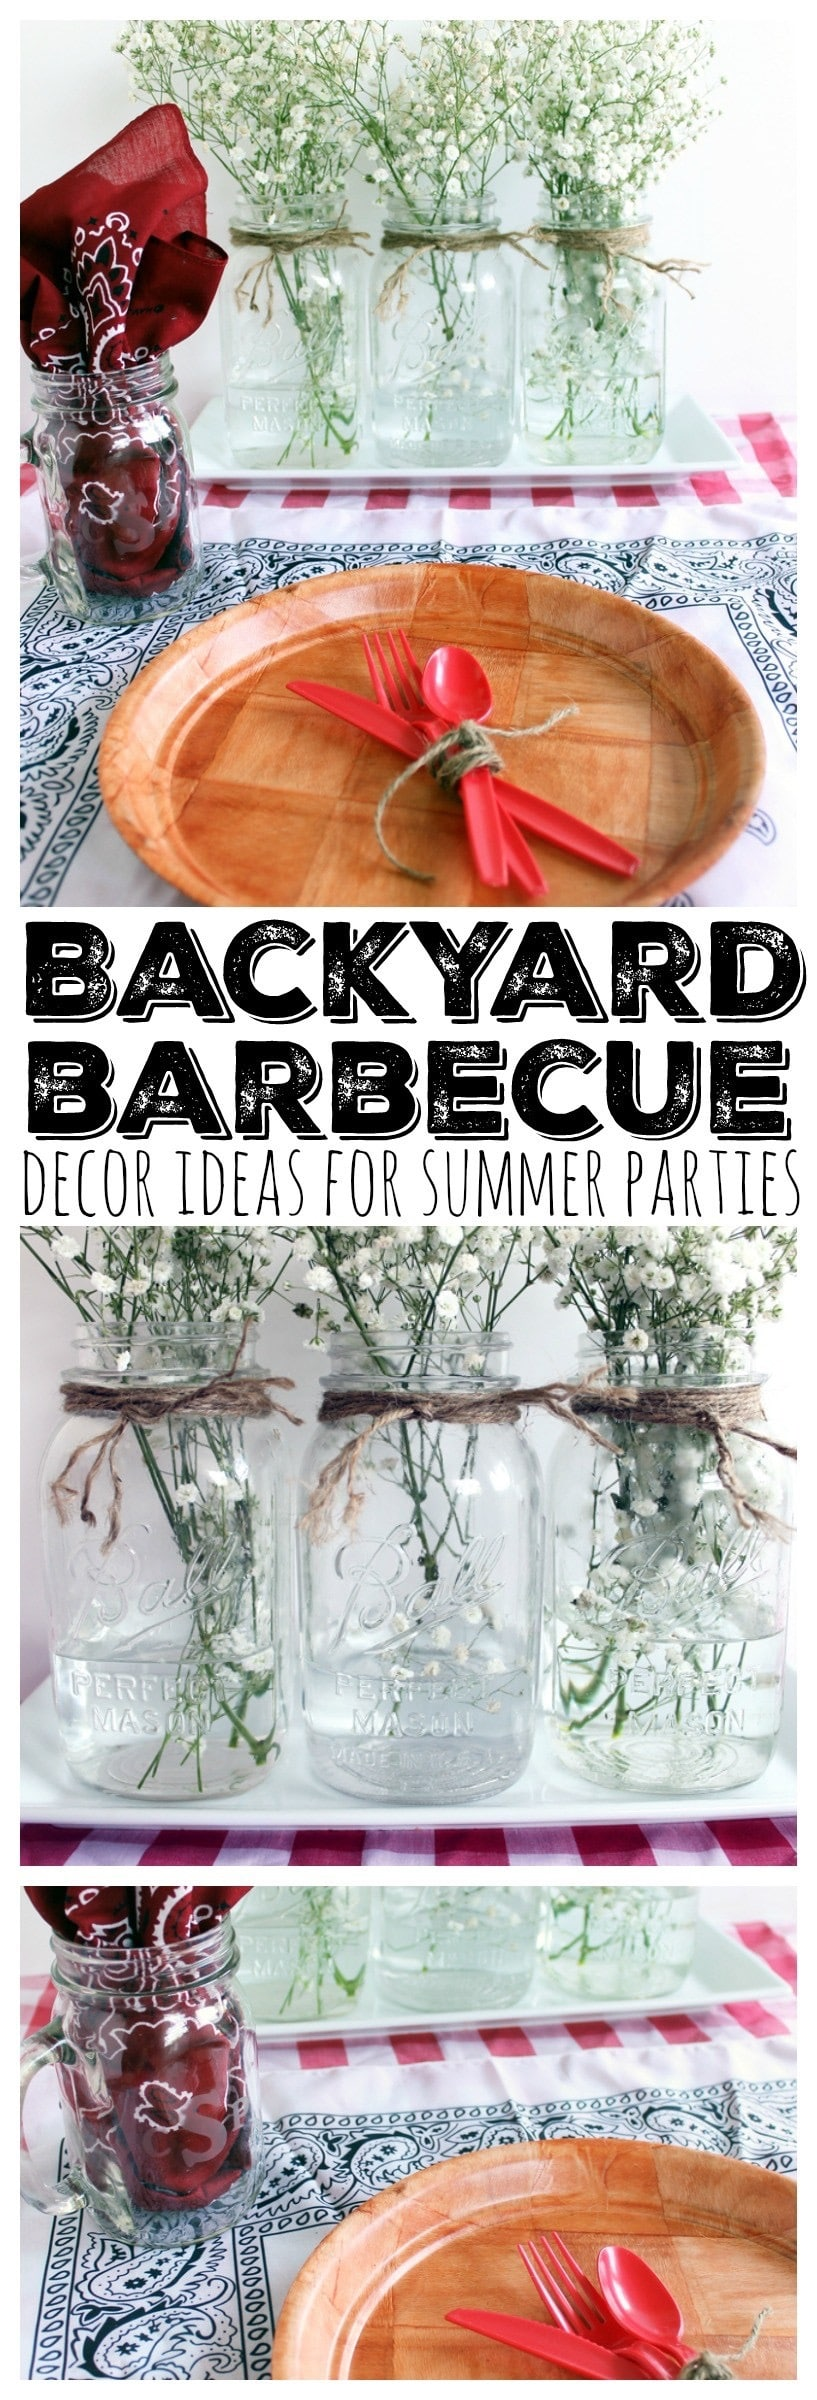 Ideas for Summer Parties - The Country Chic Cottage